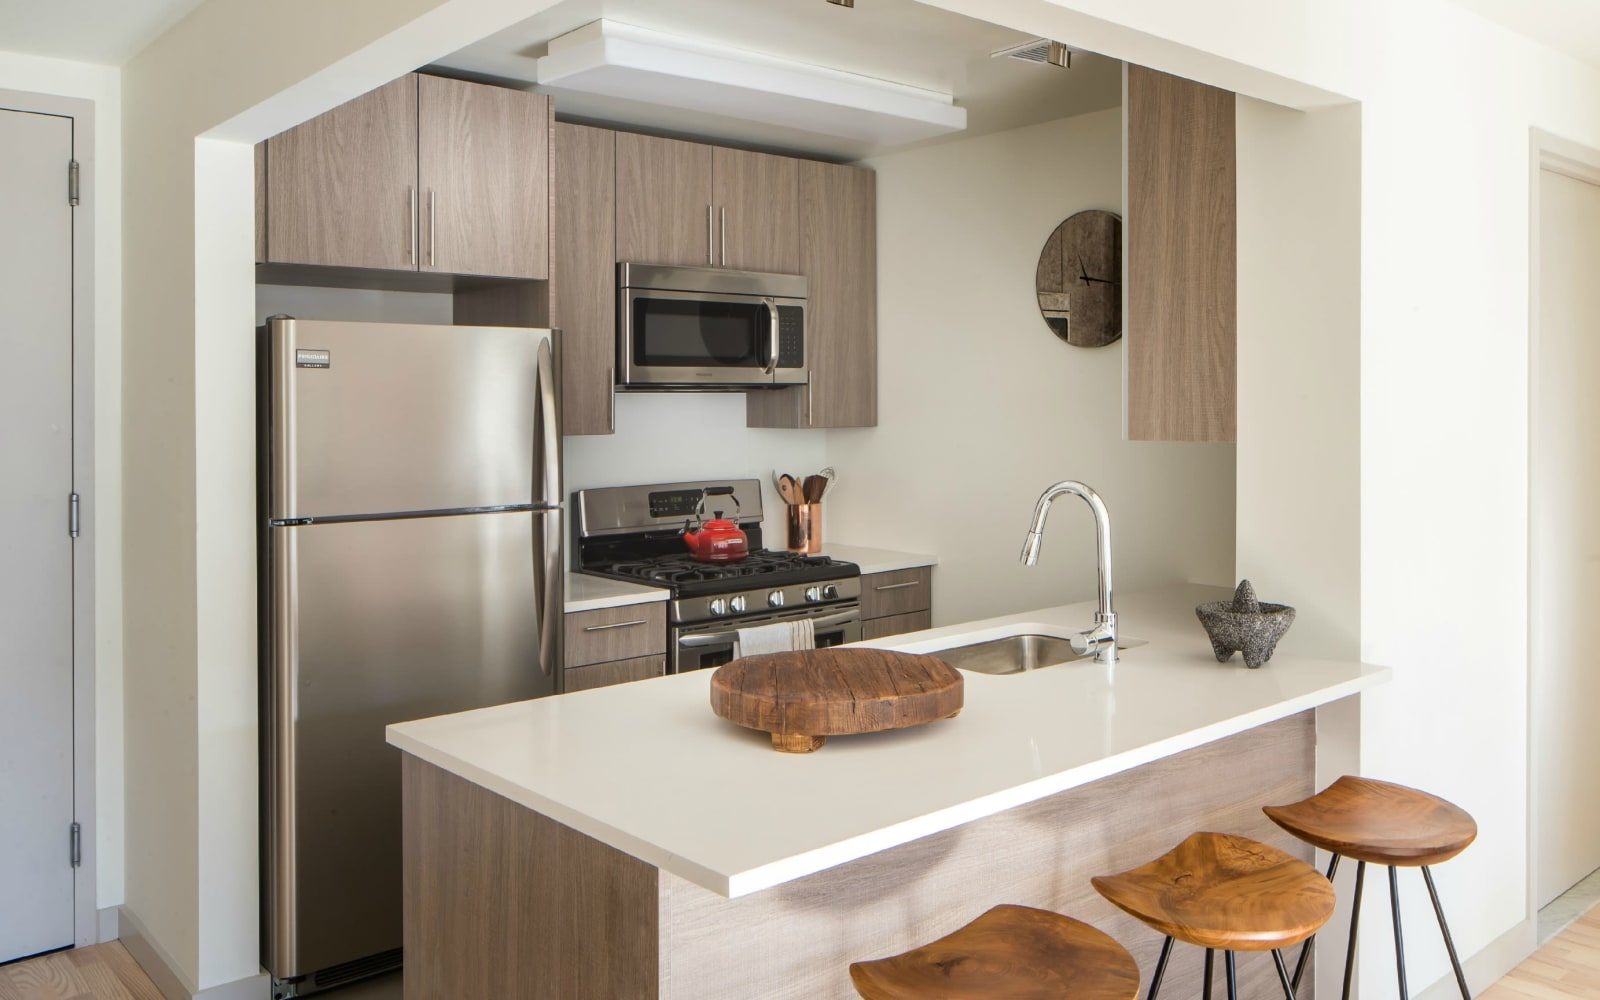 Kitchen with stainless steel appliances at Eleven33 in Brooklyn, New York